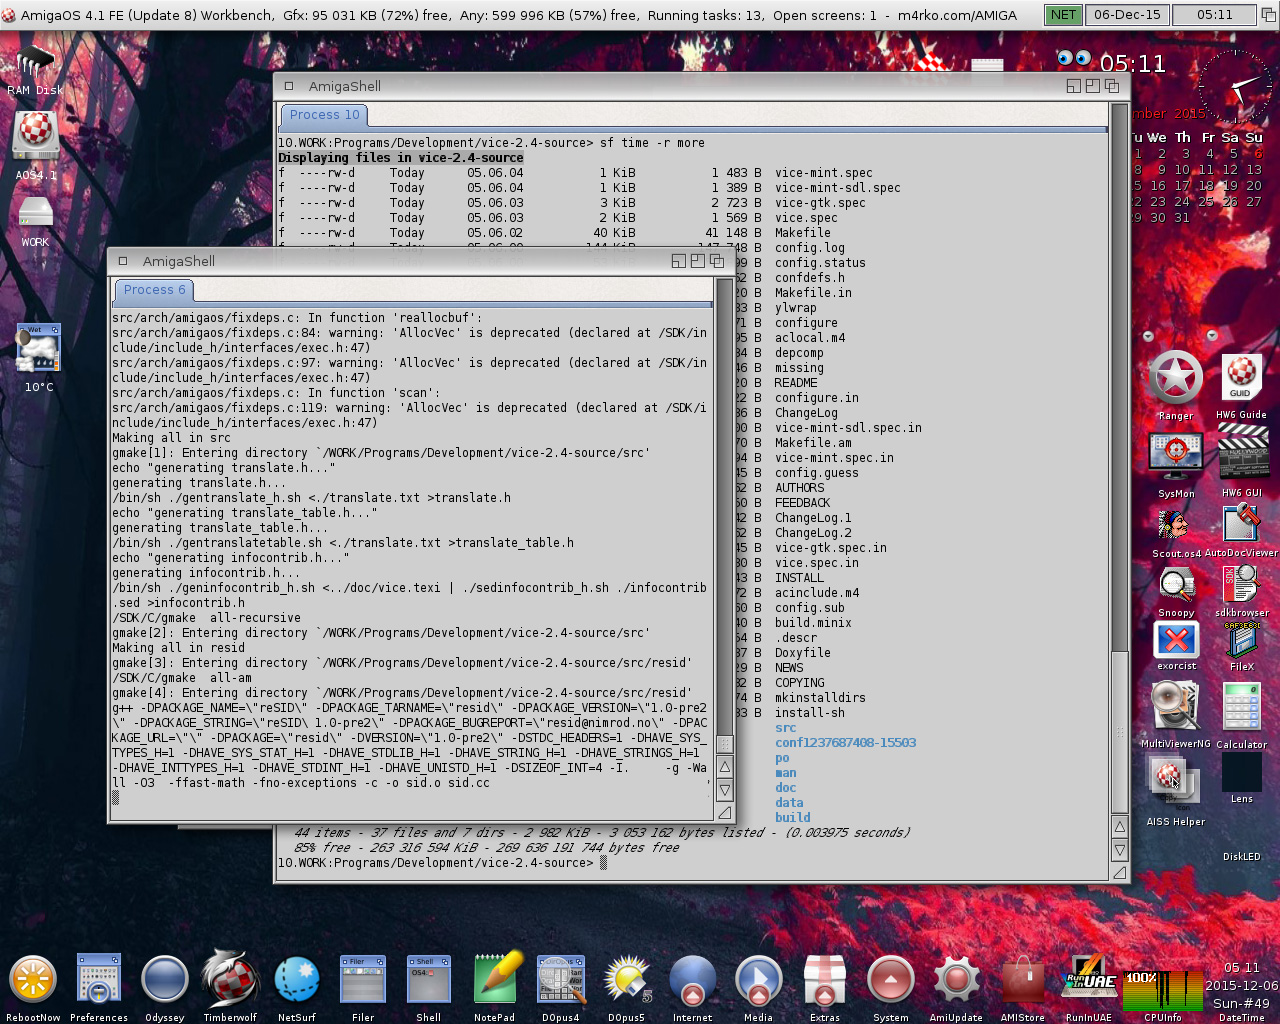 Compiling VICE-AmigaOS 4.1 FE-Update 8